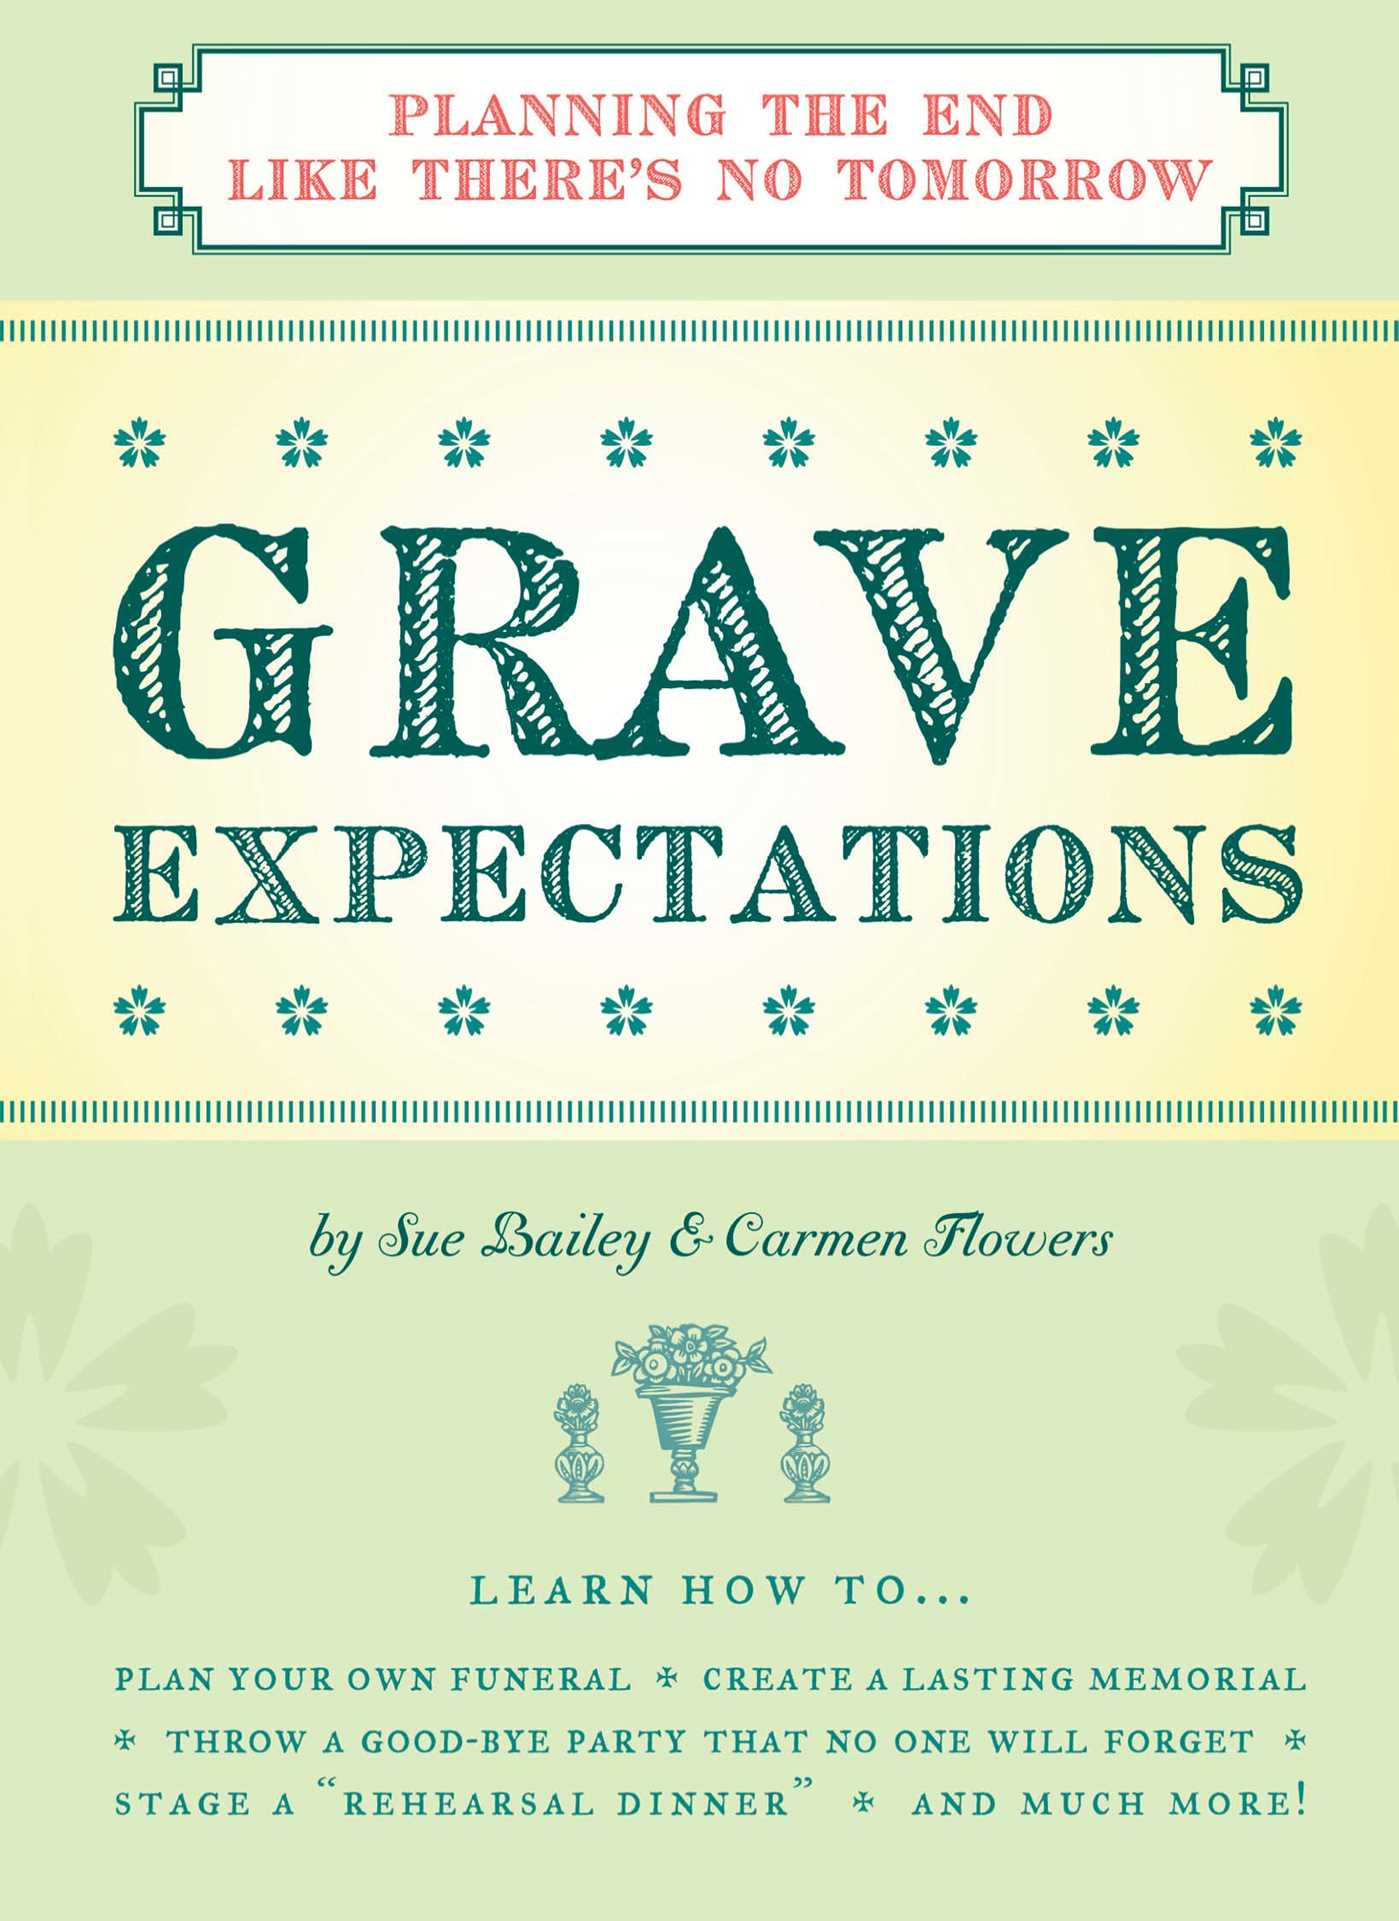 Grave expectations 9781604330212 hr